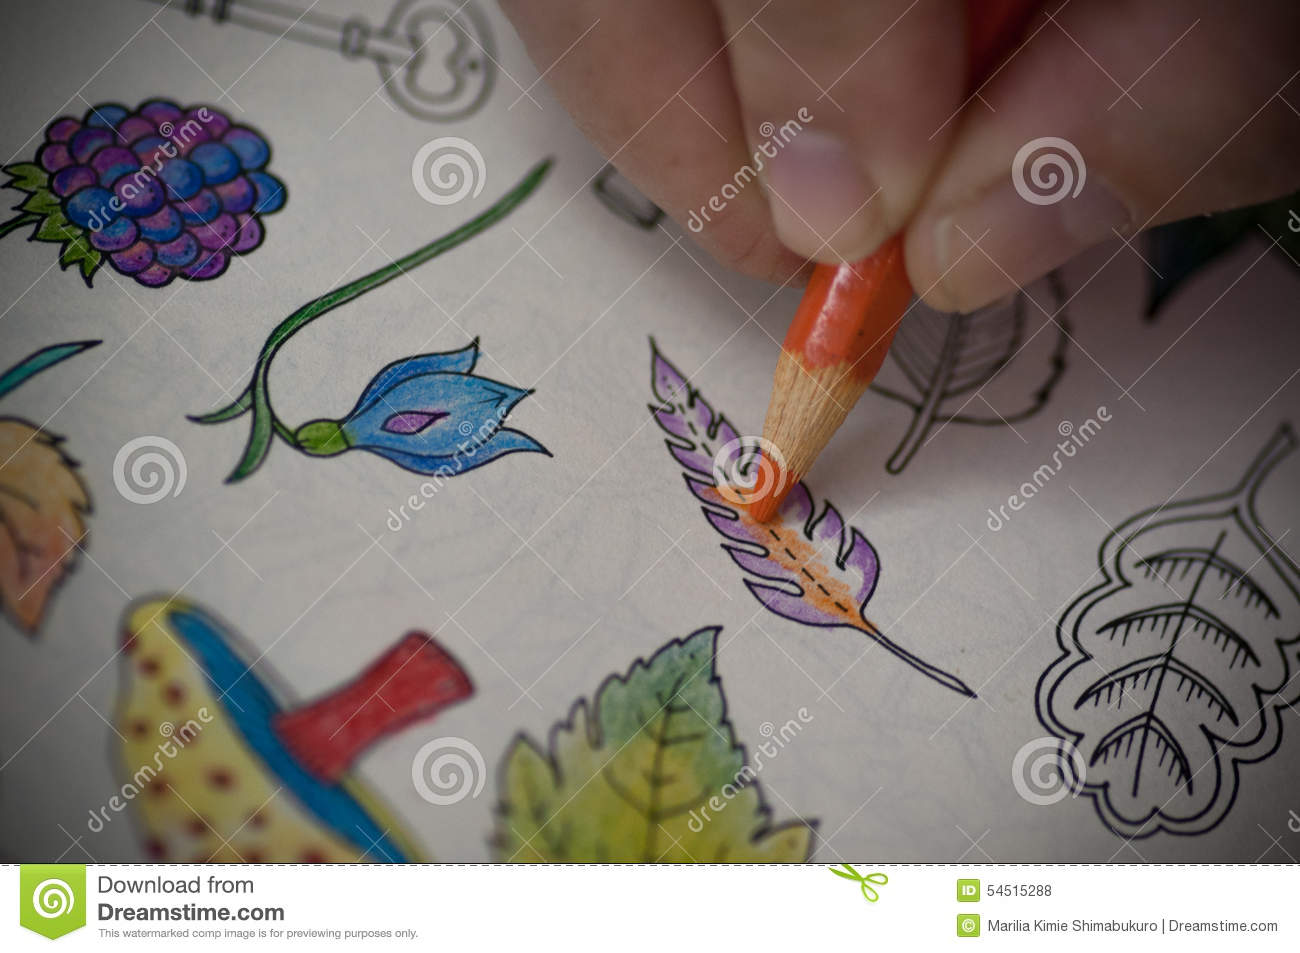 Coloring book stock photo. Image of image, book, painting - 54515288